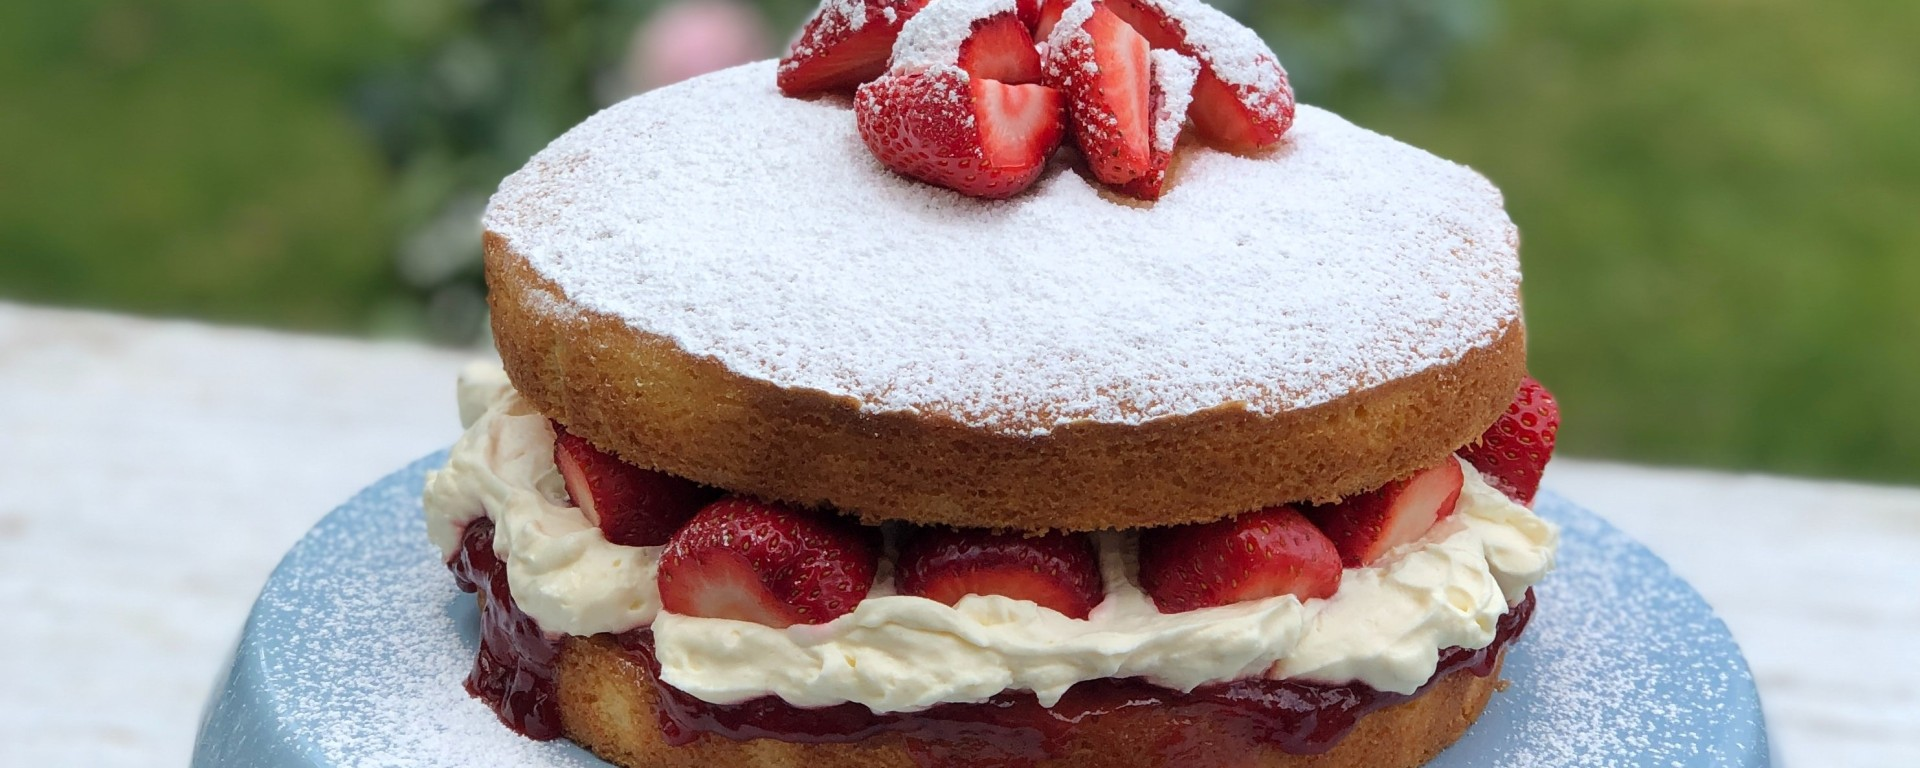 Gluten Free Sponge Cake with strawberry jam, fresh cream and chopped fresh strawberries